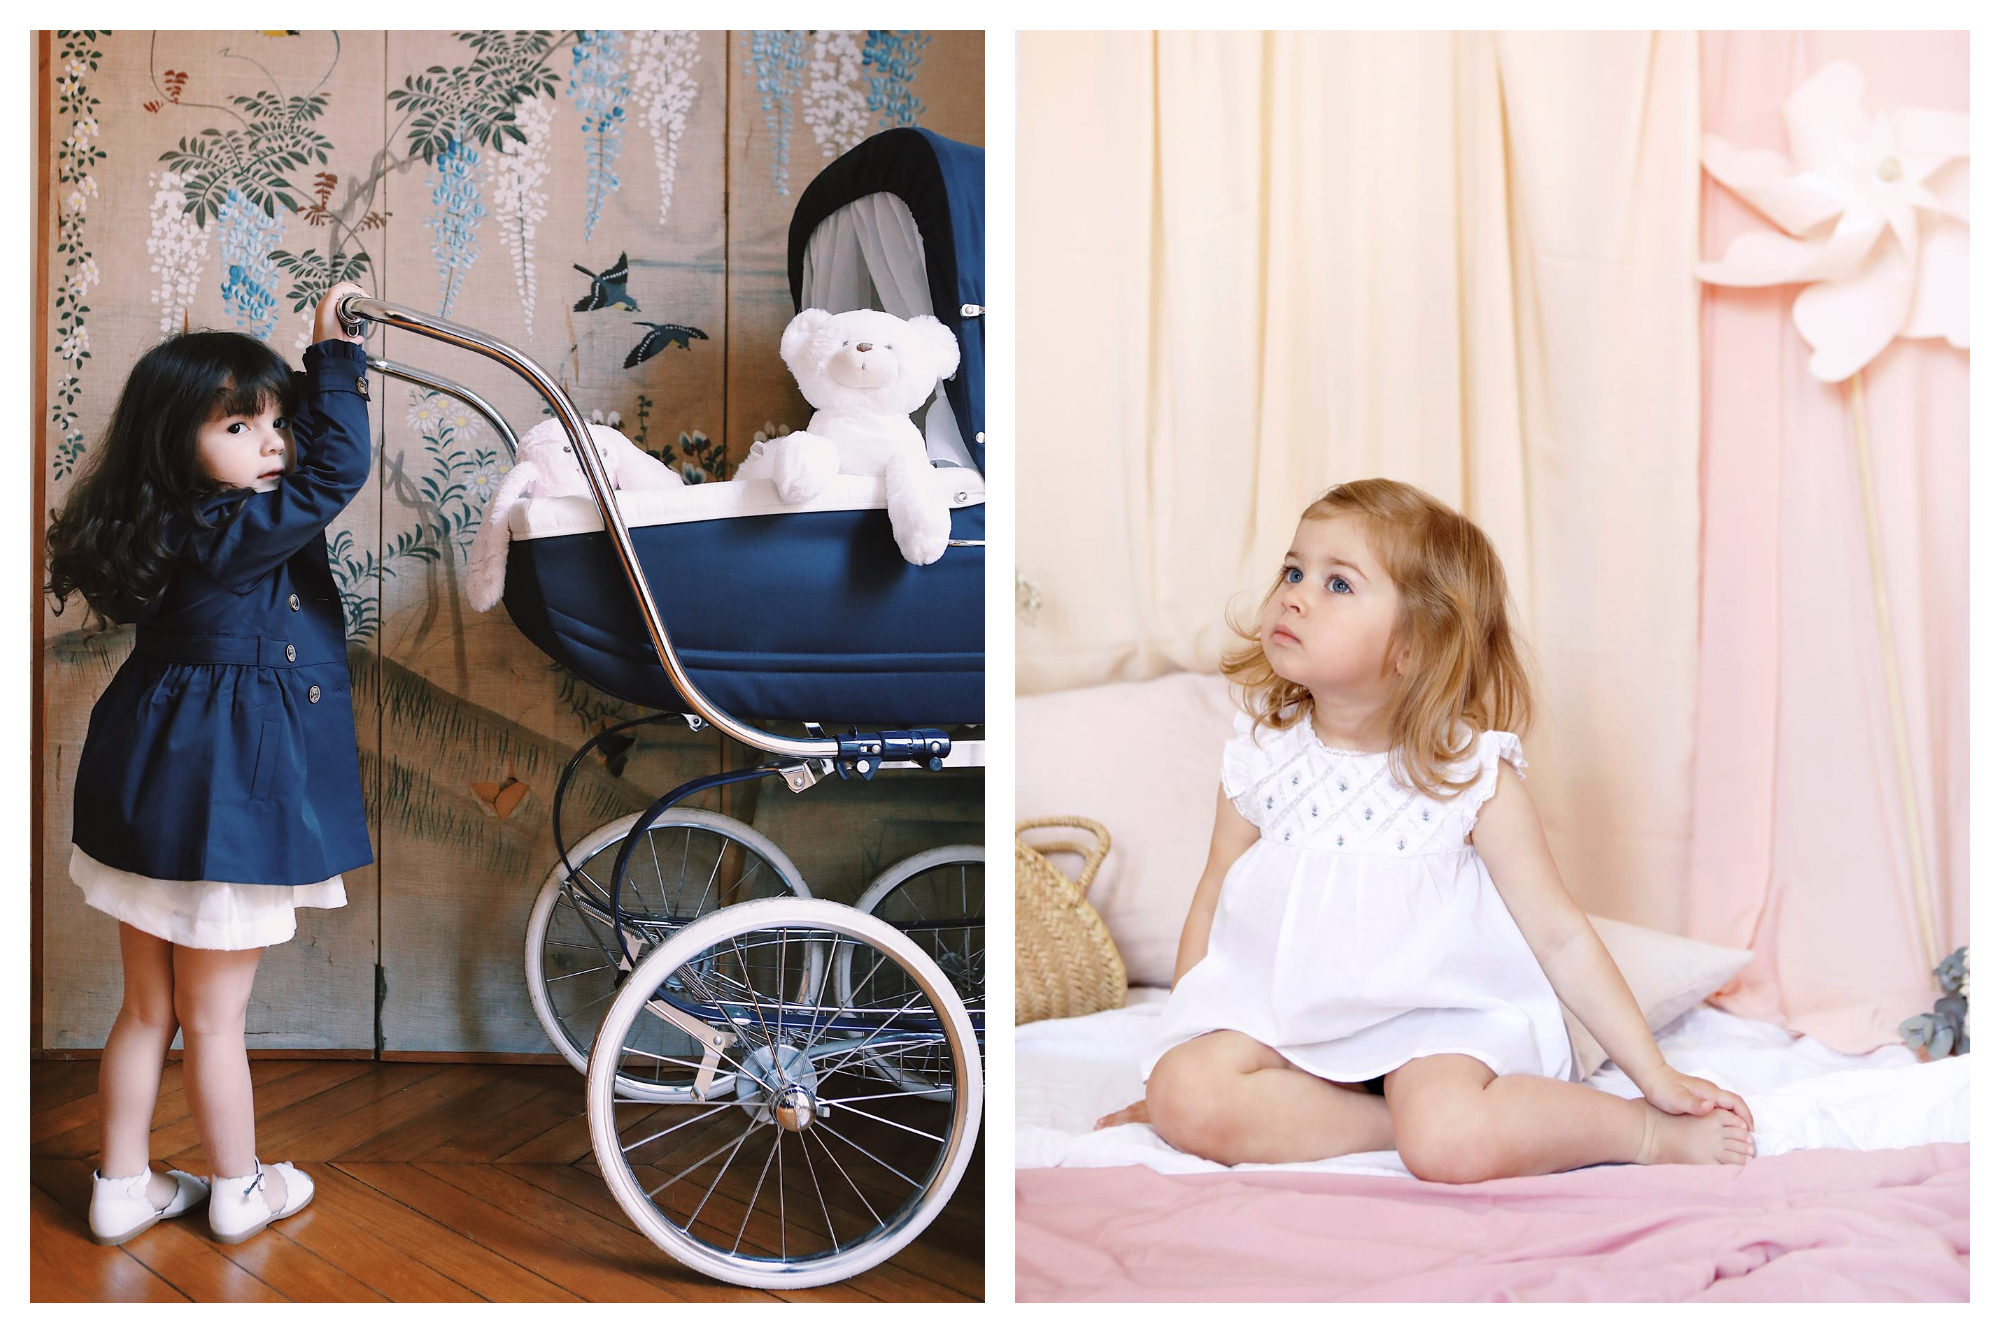 A little brown-haired girl dressed in a navy coat pushing a stroller with teddy in it (left). A little blonde girl wearing a white dress from Tartine et Chocolat and sitting on a bed (right).